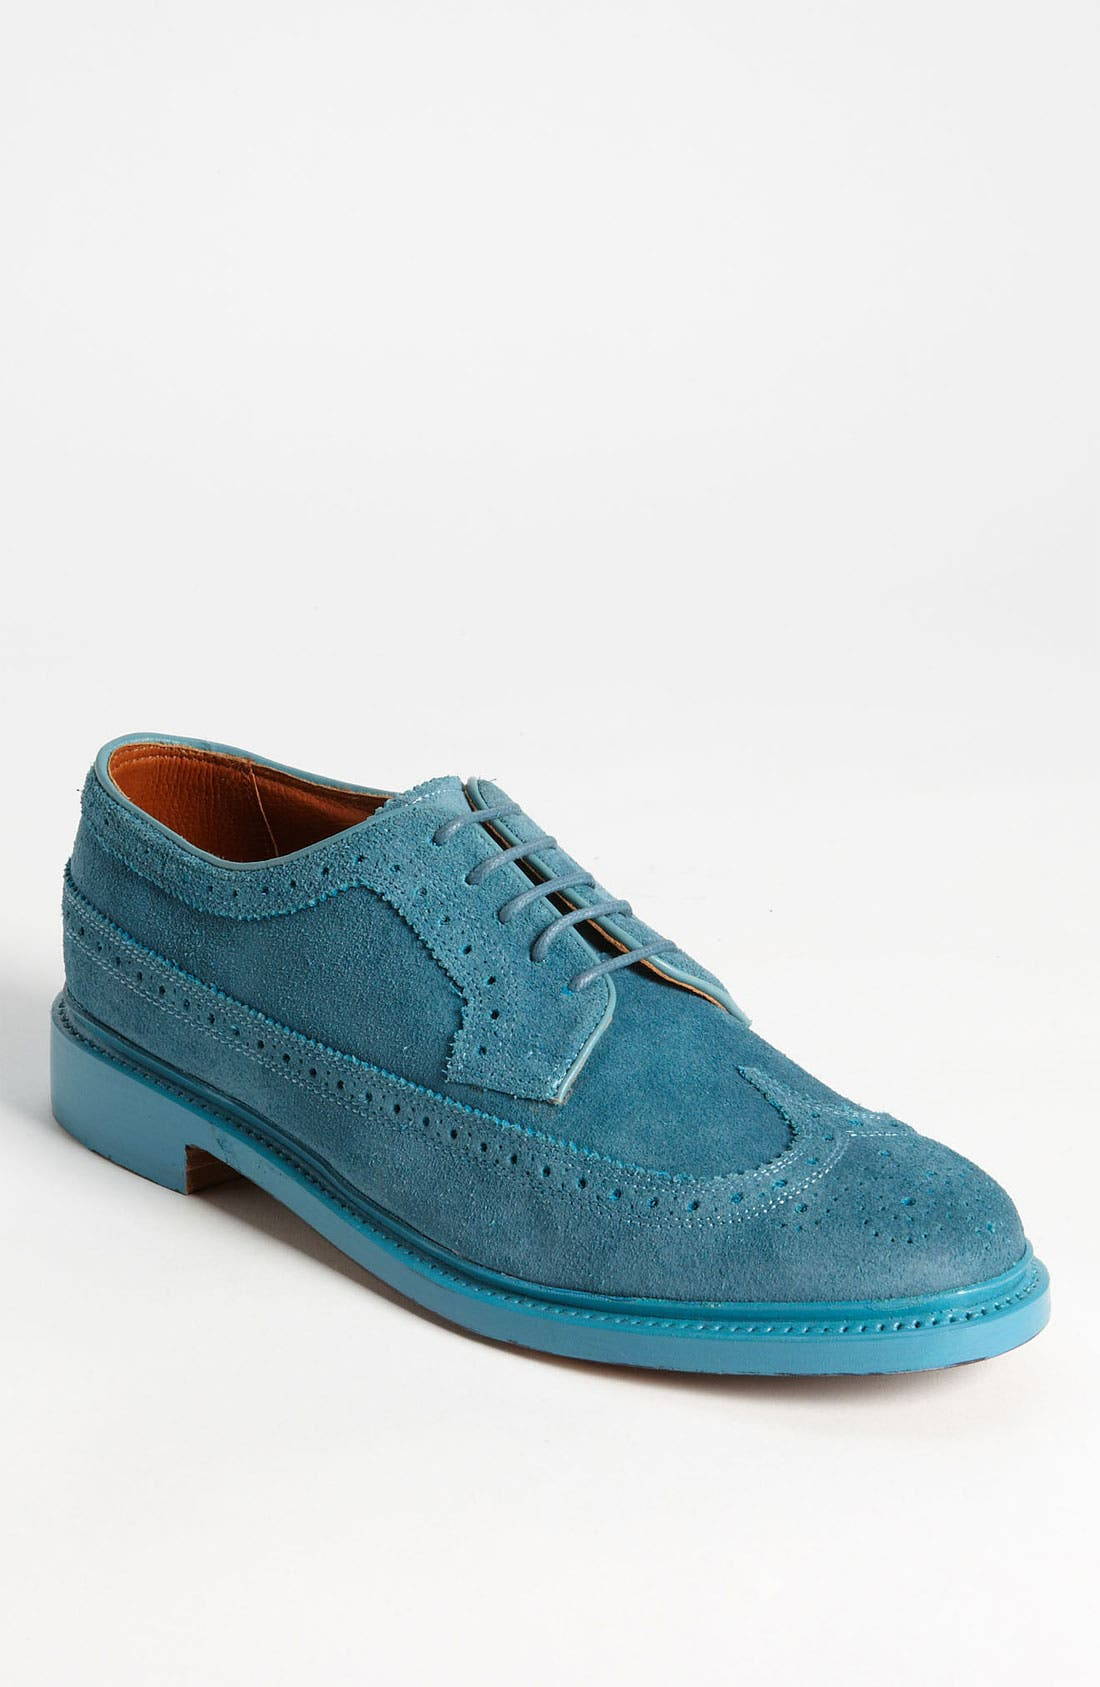 Main Image - Florsheim by Duckie Brown Suede Longwing